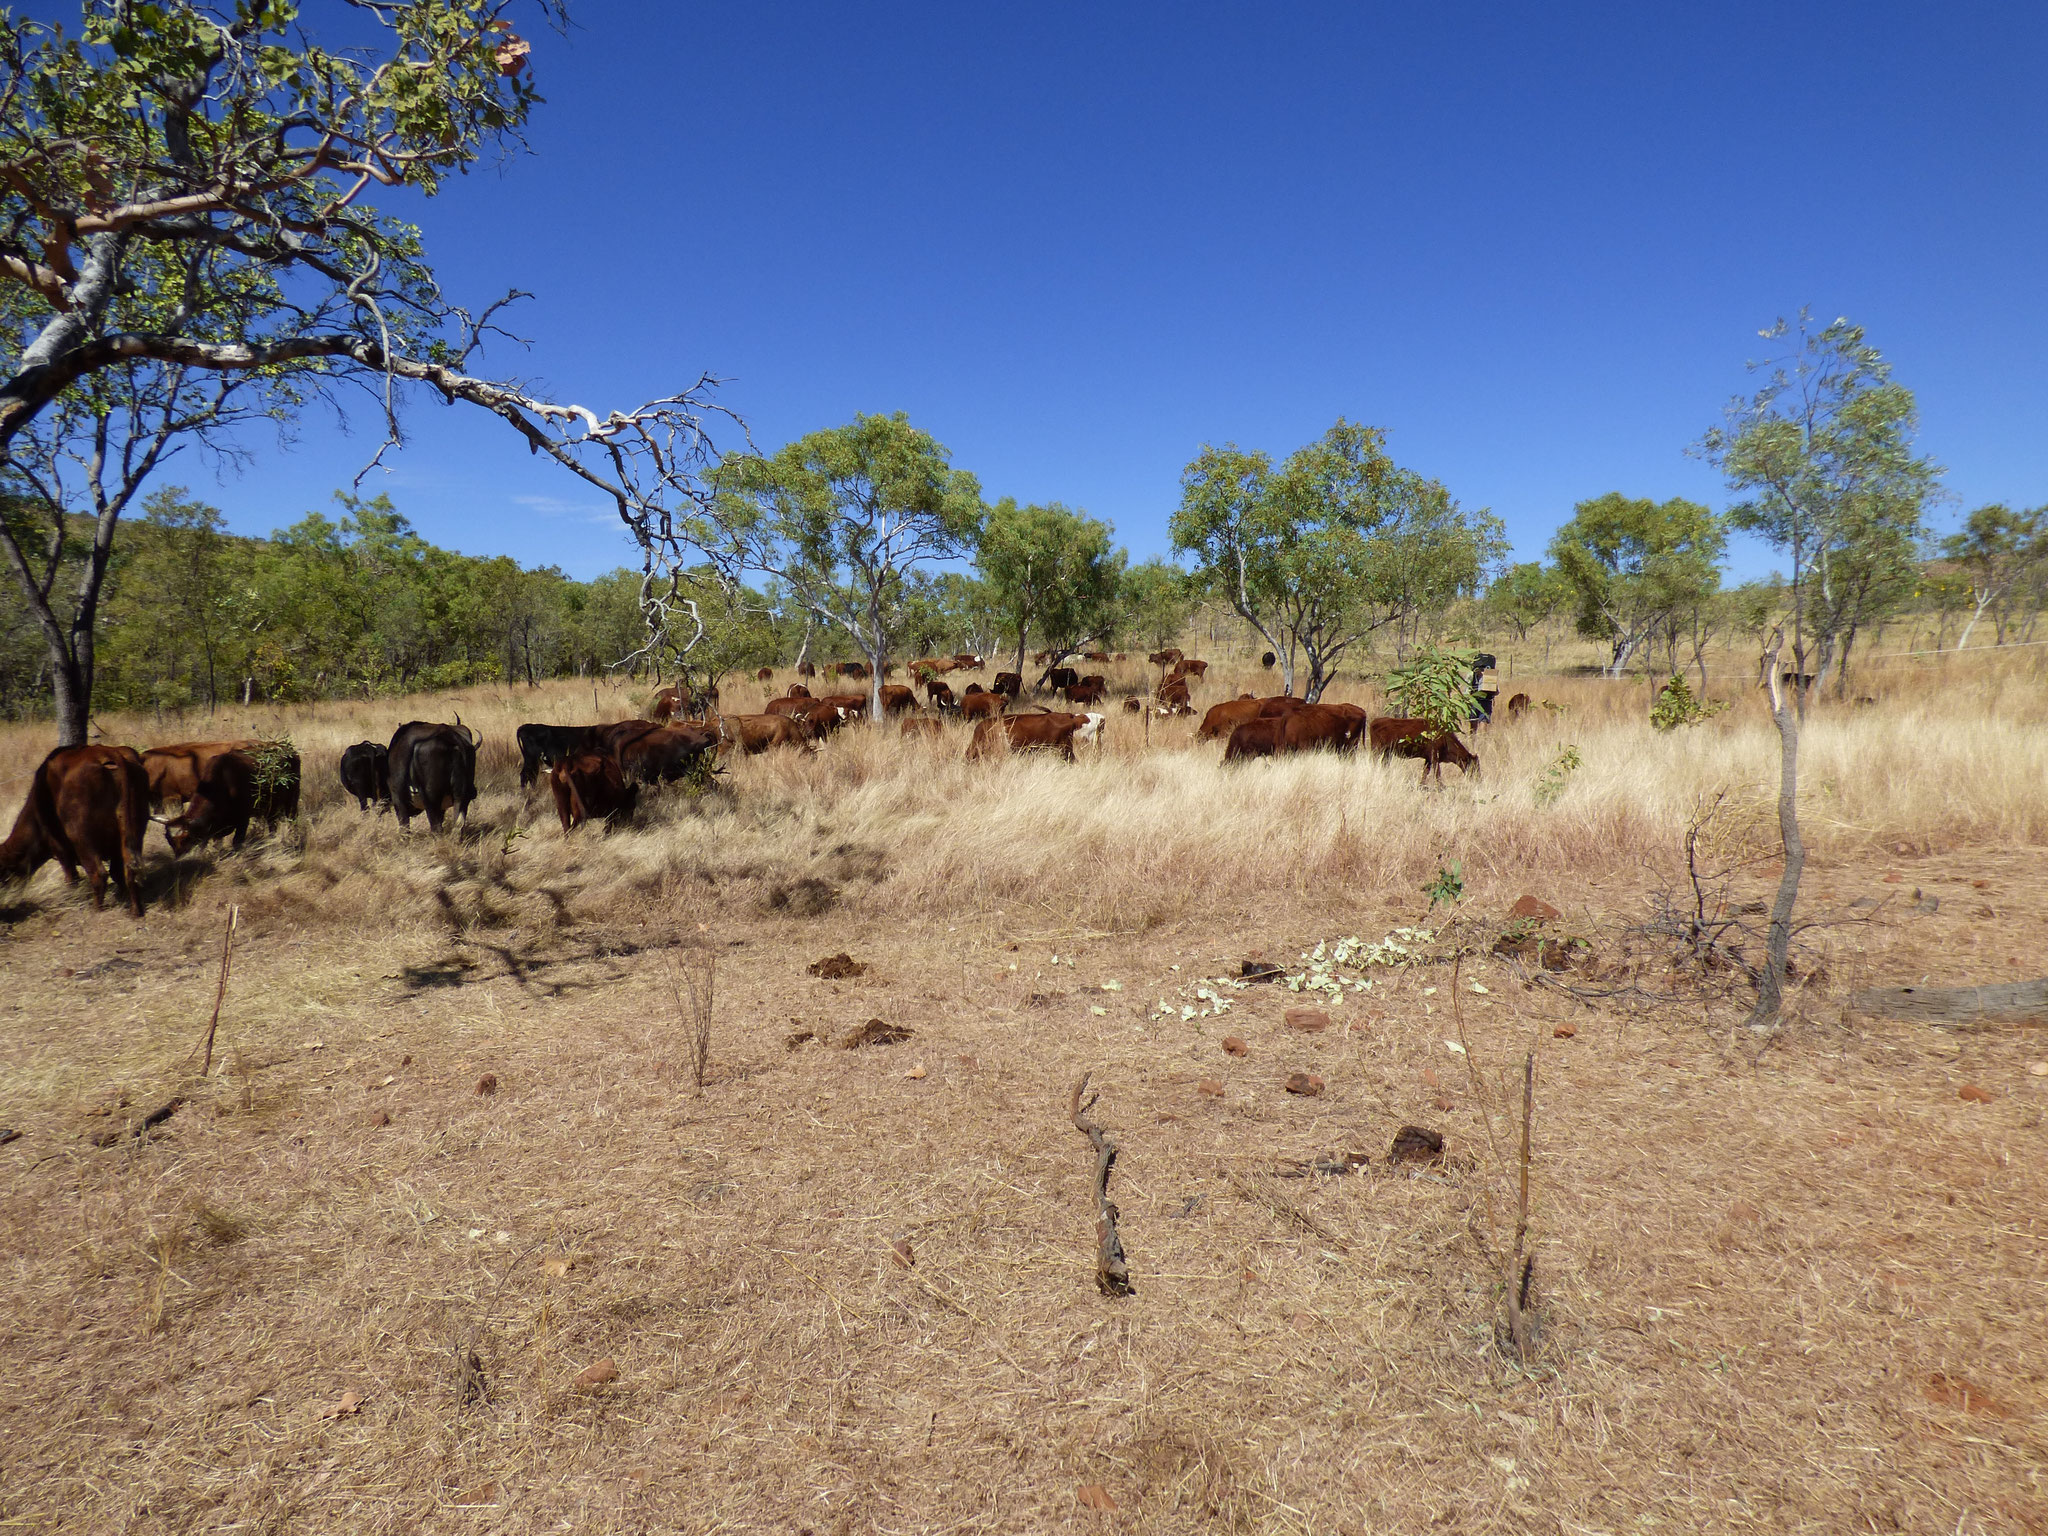 Cattle reducing fire danger